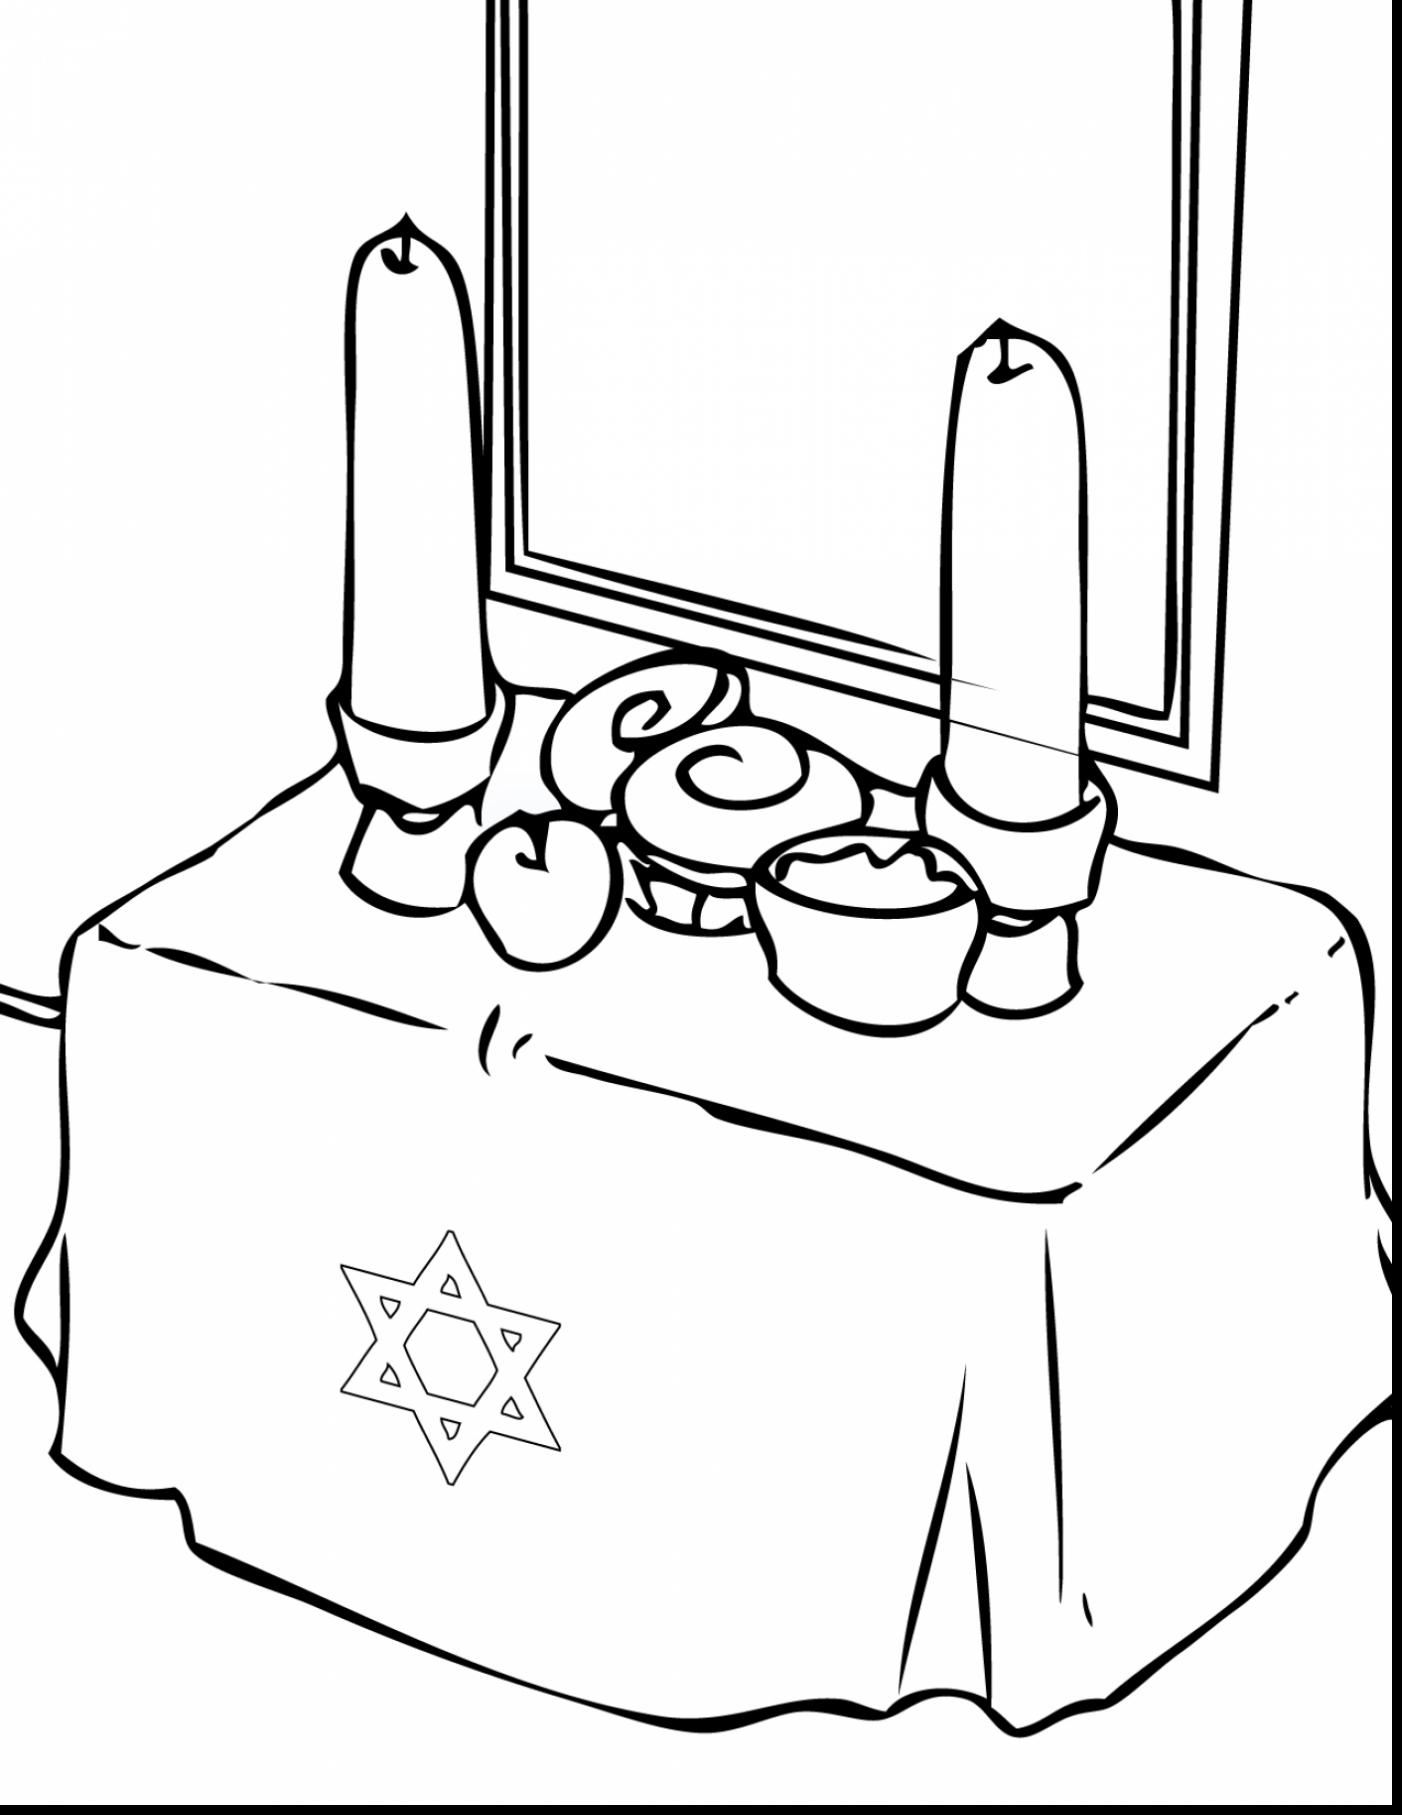 Hanukkah Coloring Pages